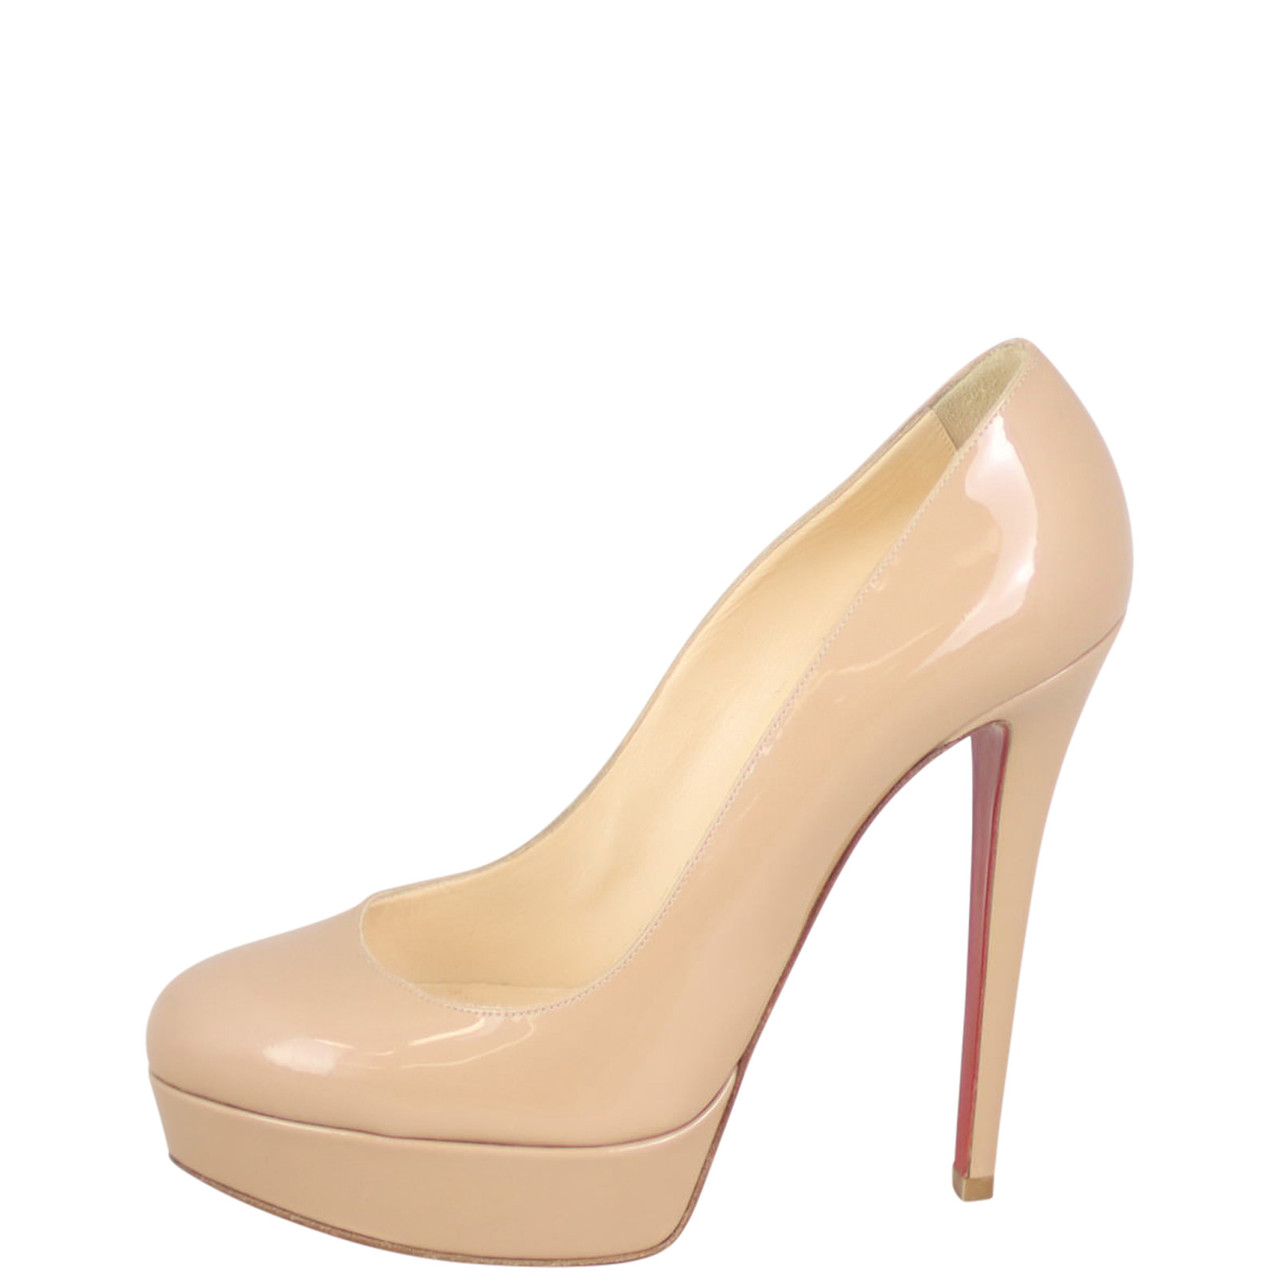 Christian Louboutin Bianca Pumps - Up to 70% off at Tradesy